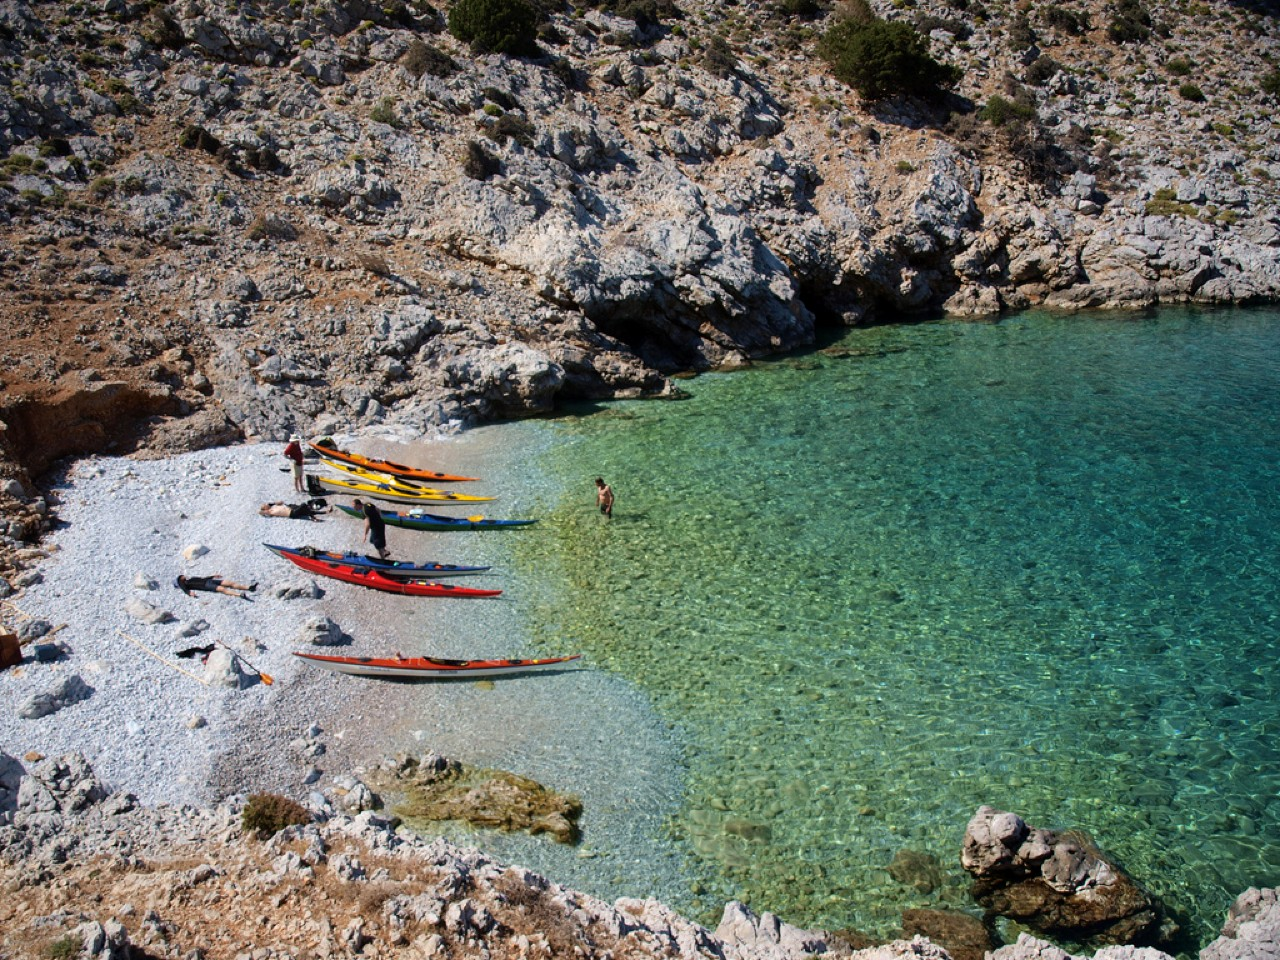 Sea Kayak Eskimo Roll Course In Crete, seakayak courses crete heraklion, sea kayak courses crete, best sea kayak company crete, best sea kayak courses crete, enjoy crete sea kayak company